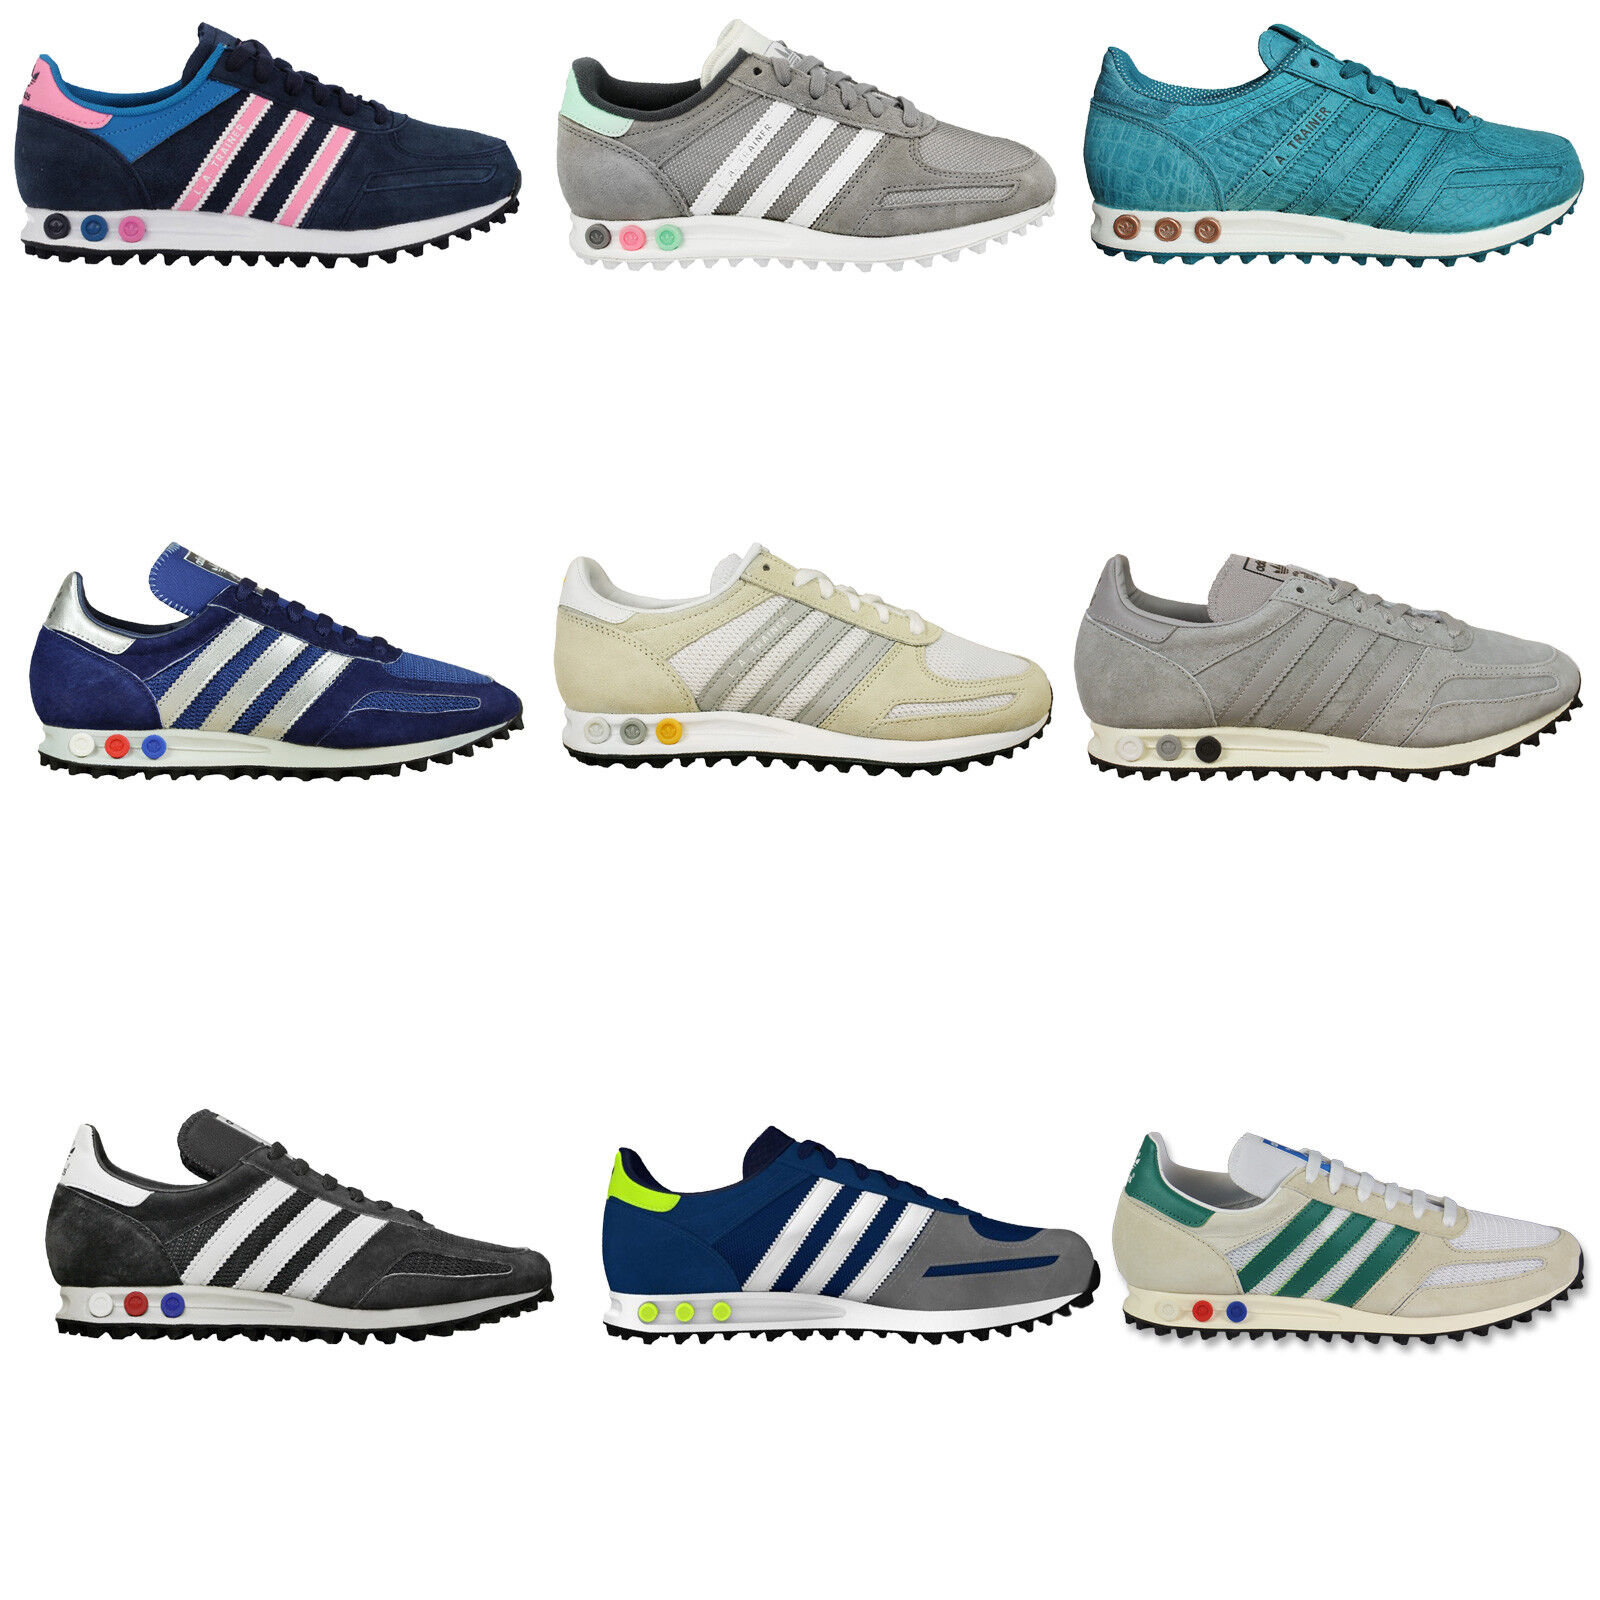 Adidas Originals La Trainer Womens Trainers Running shoes Casual shoes Sneakers